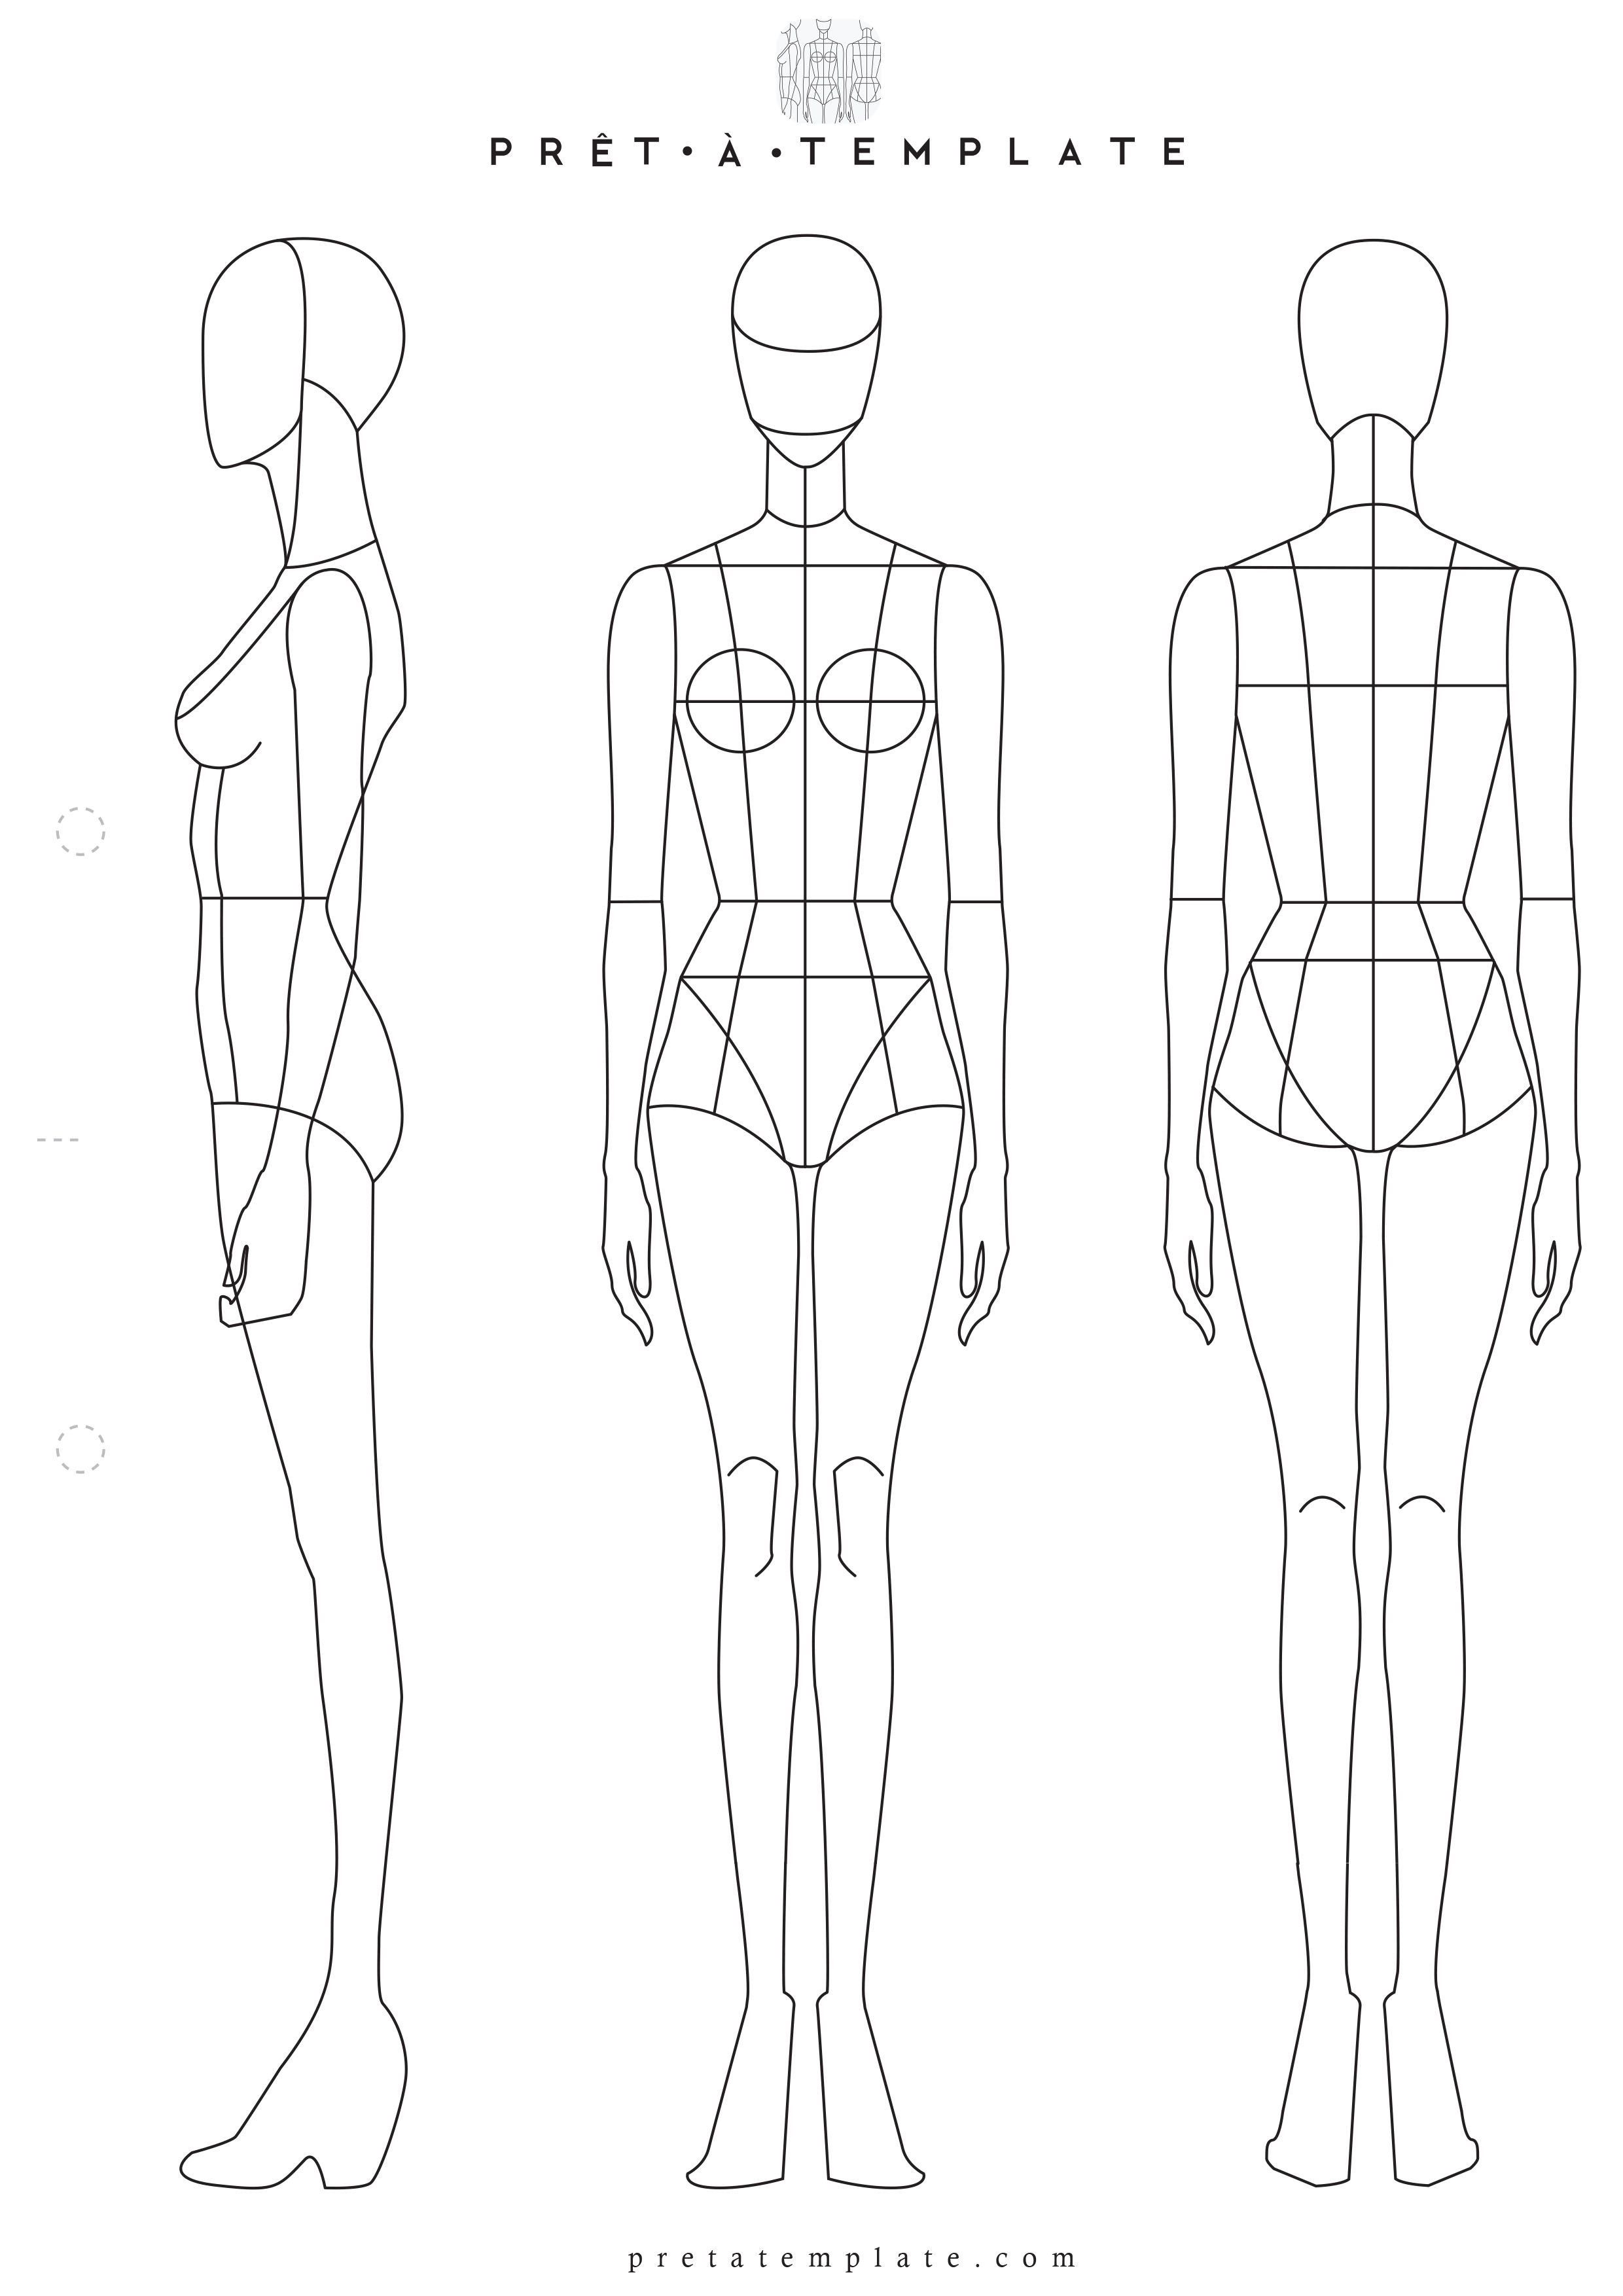 002 Stunning Body Template For Fashion Design Highest Quality  Female Male HumanFull